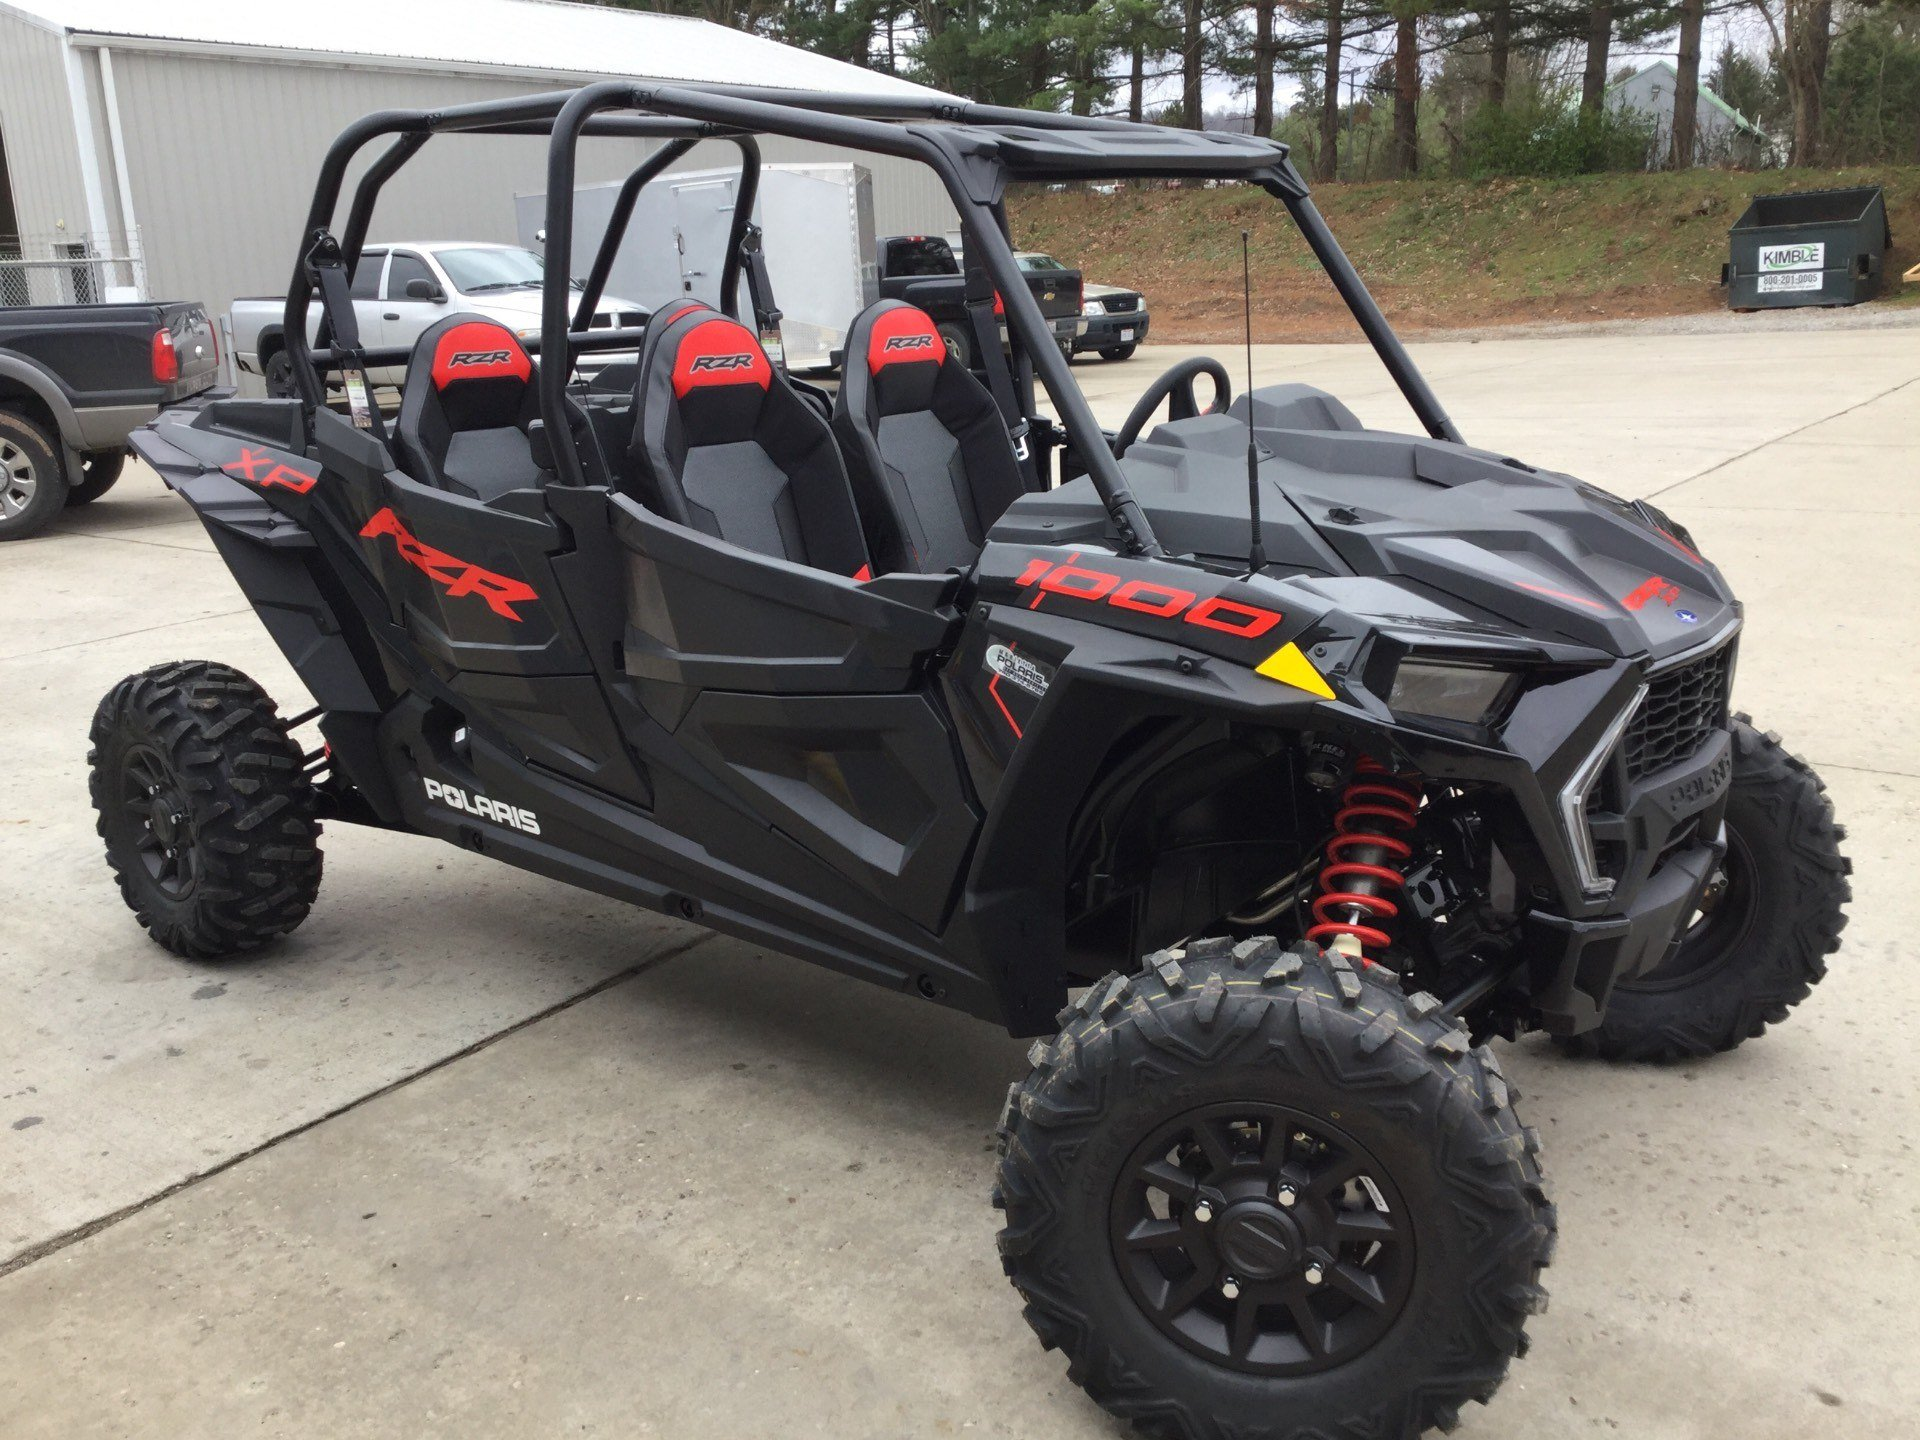 2020 Polaris RZR XP 4 1000 Premium in Marietta, Ohio - Photo 3